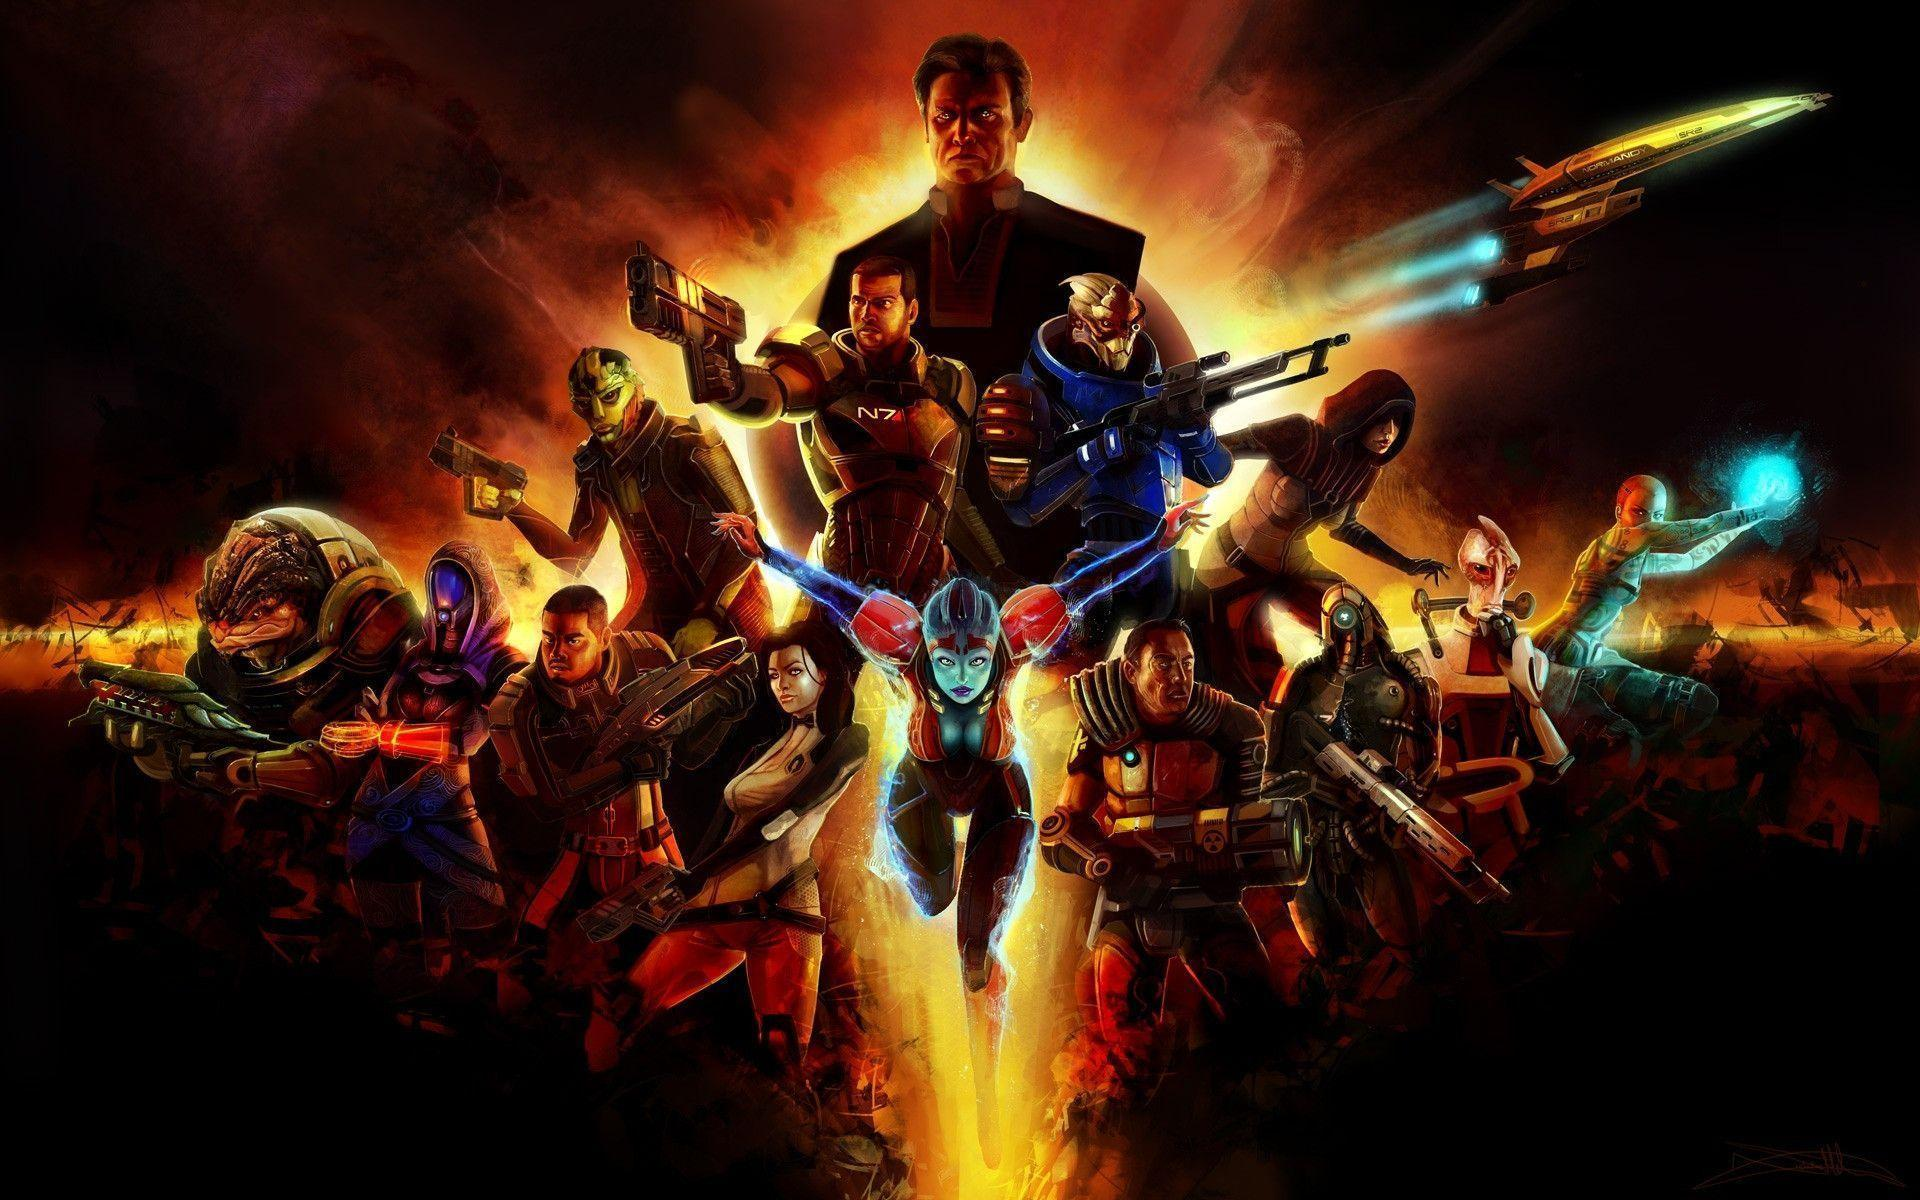 Mass Effect 2 Wallpapers For Android